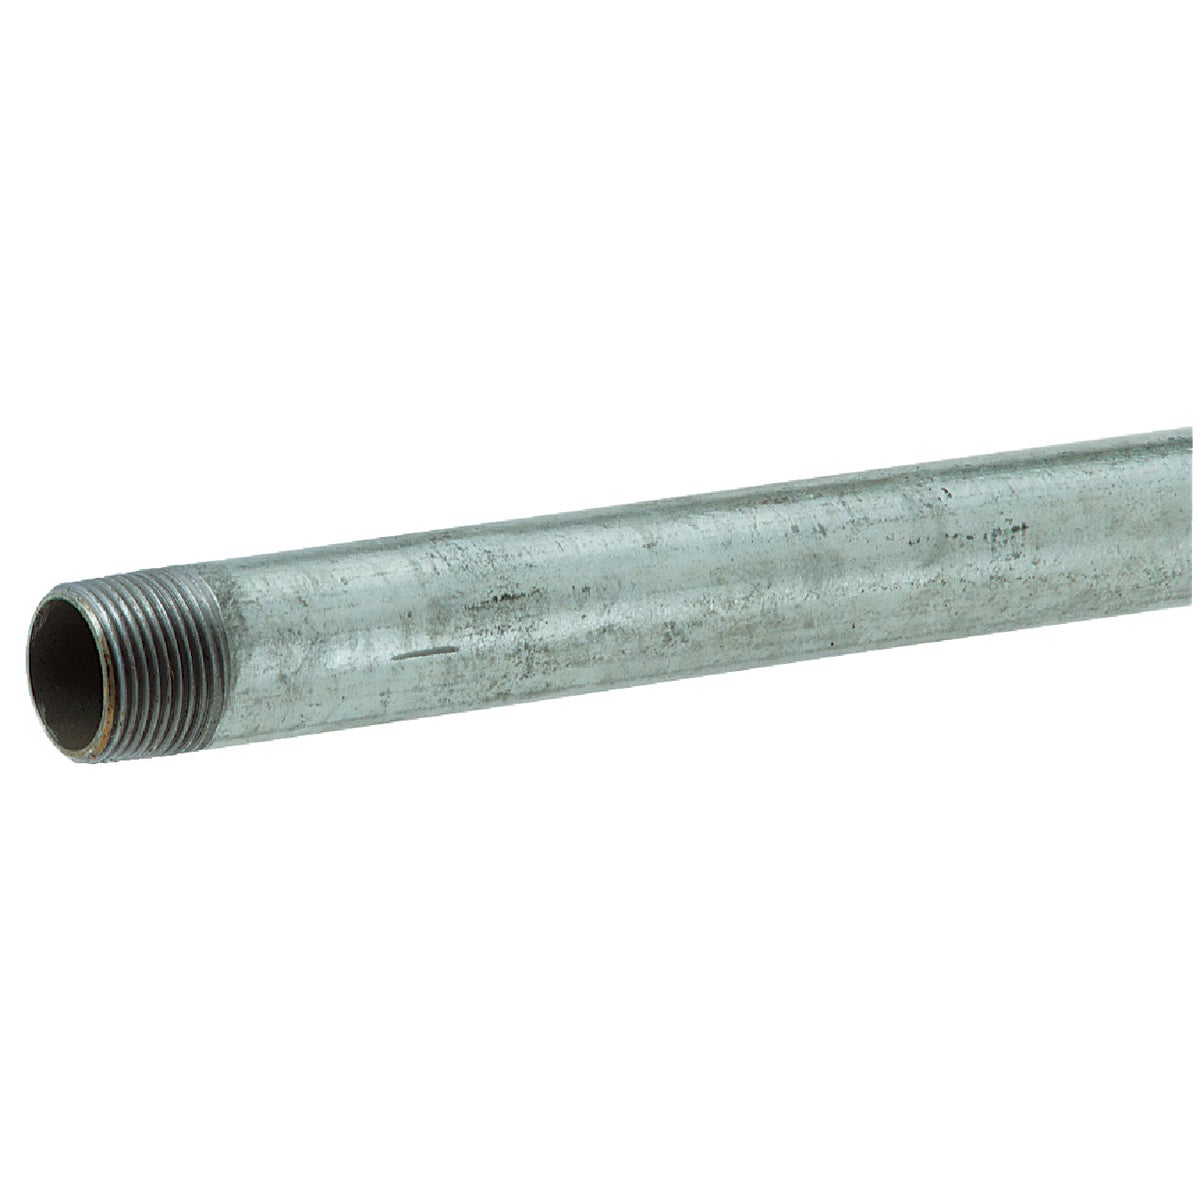 2X24 GALV RDI-CT PIPE - 2X24 by Southland Pipe Nippl